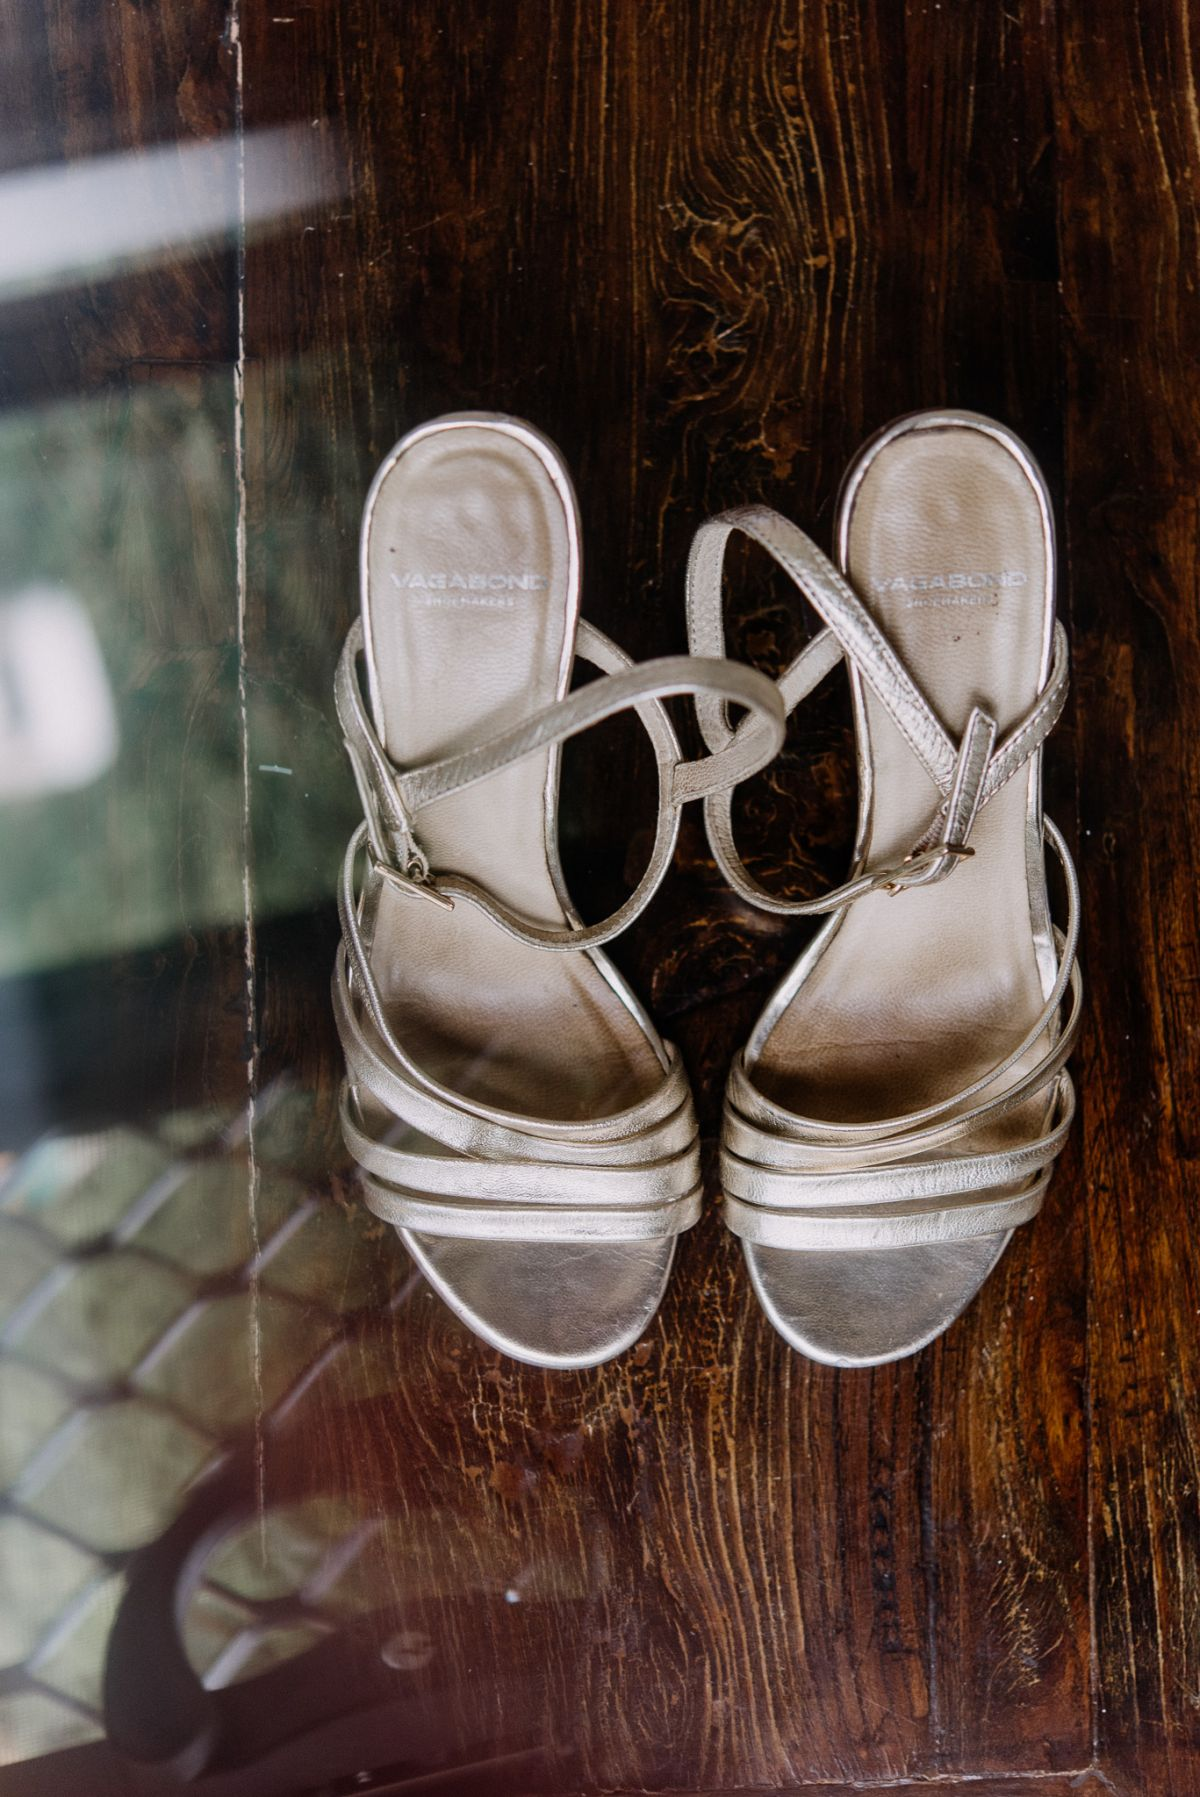 Bride's shoes and wedding details at morning preparation